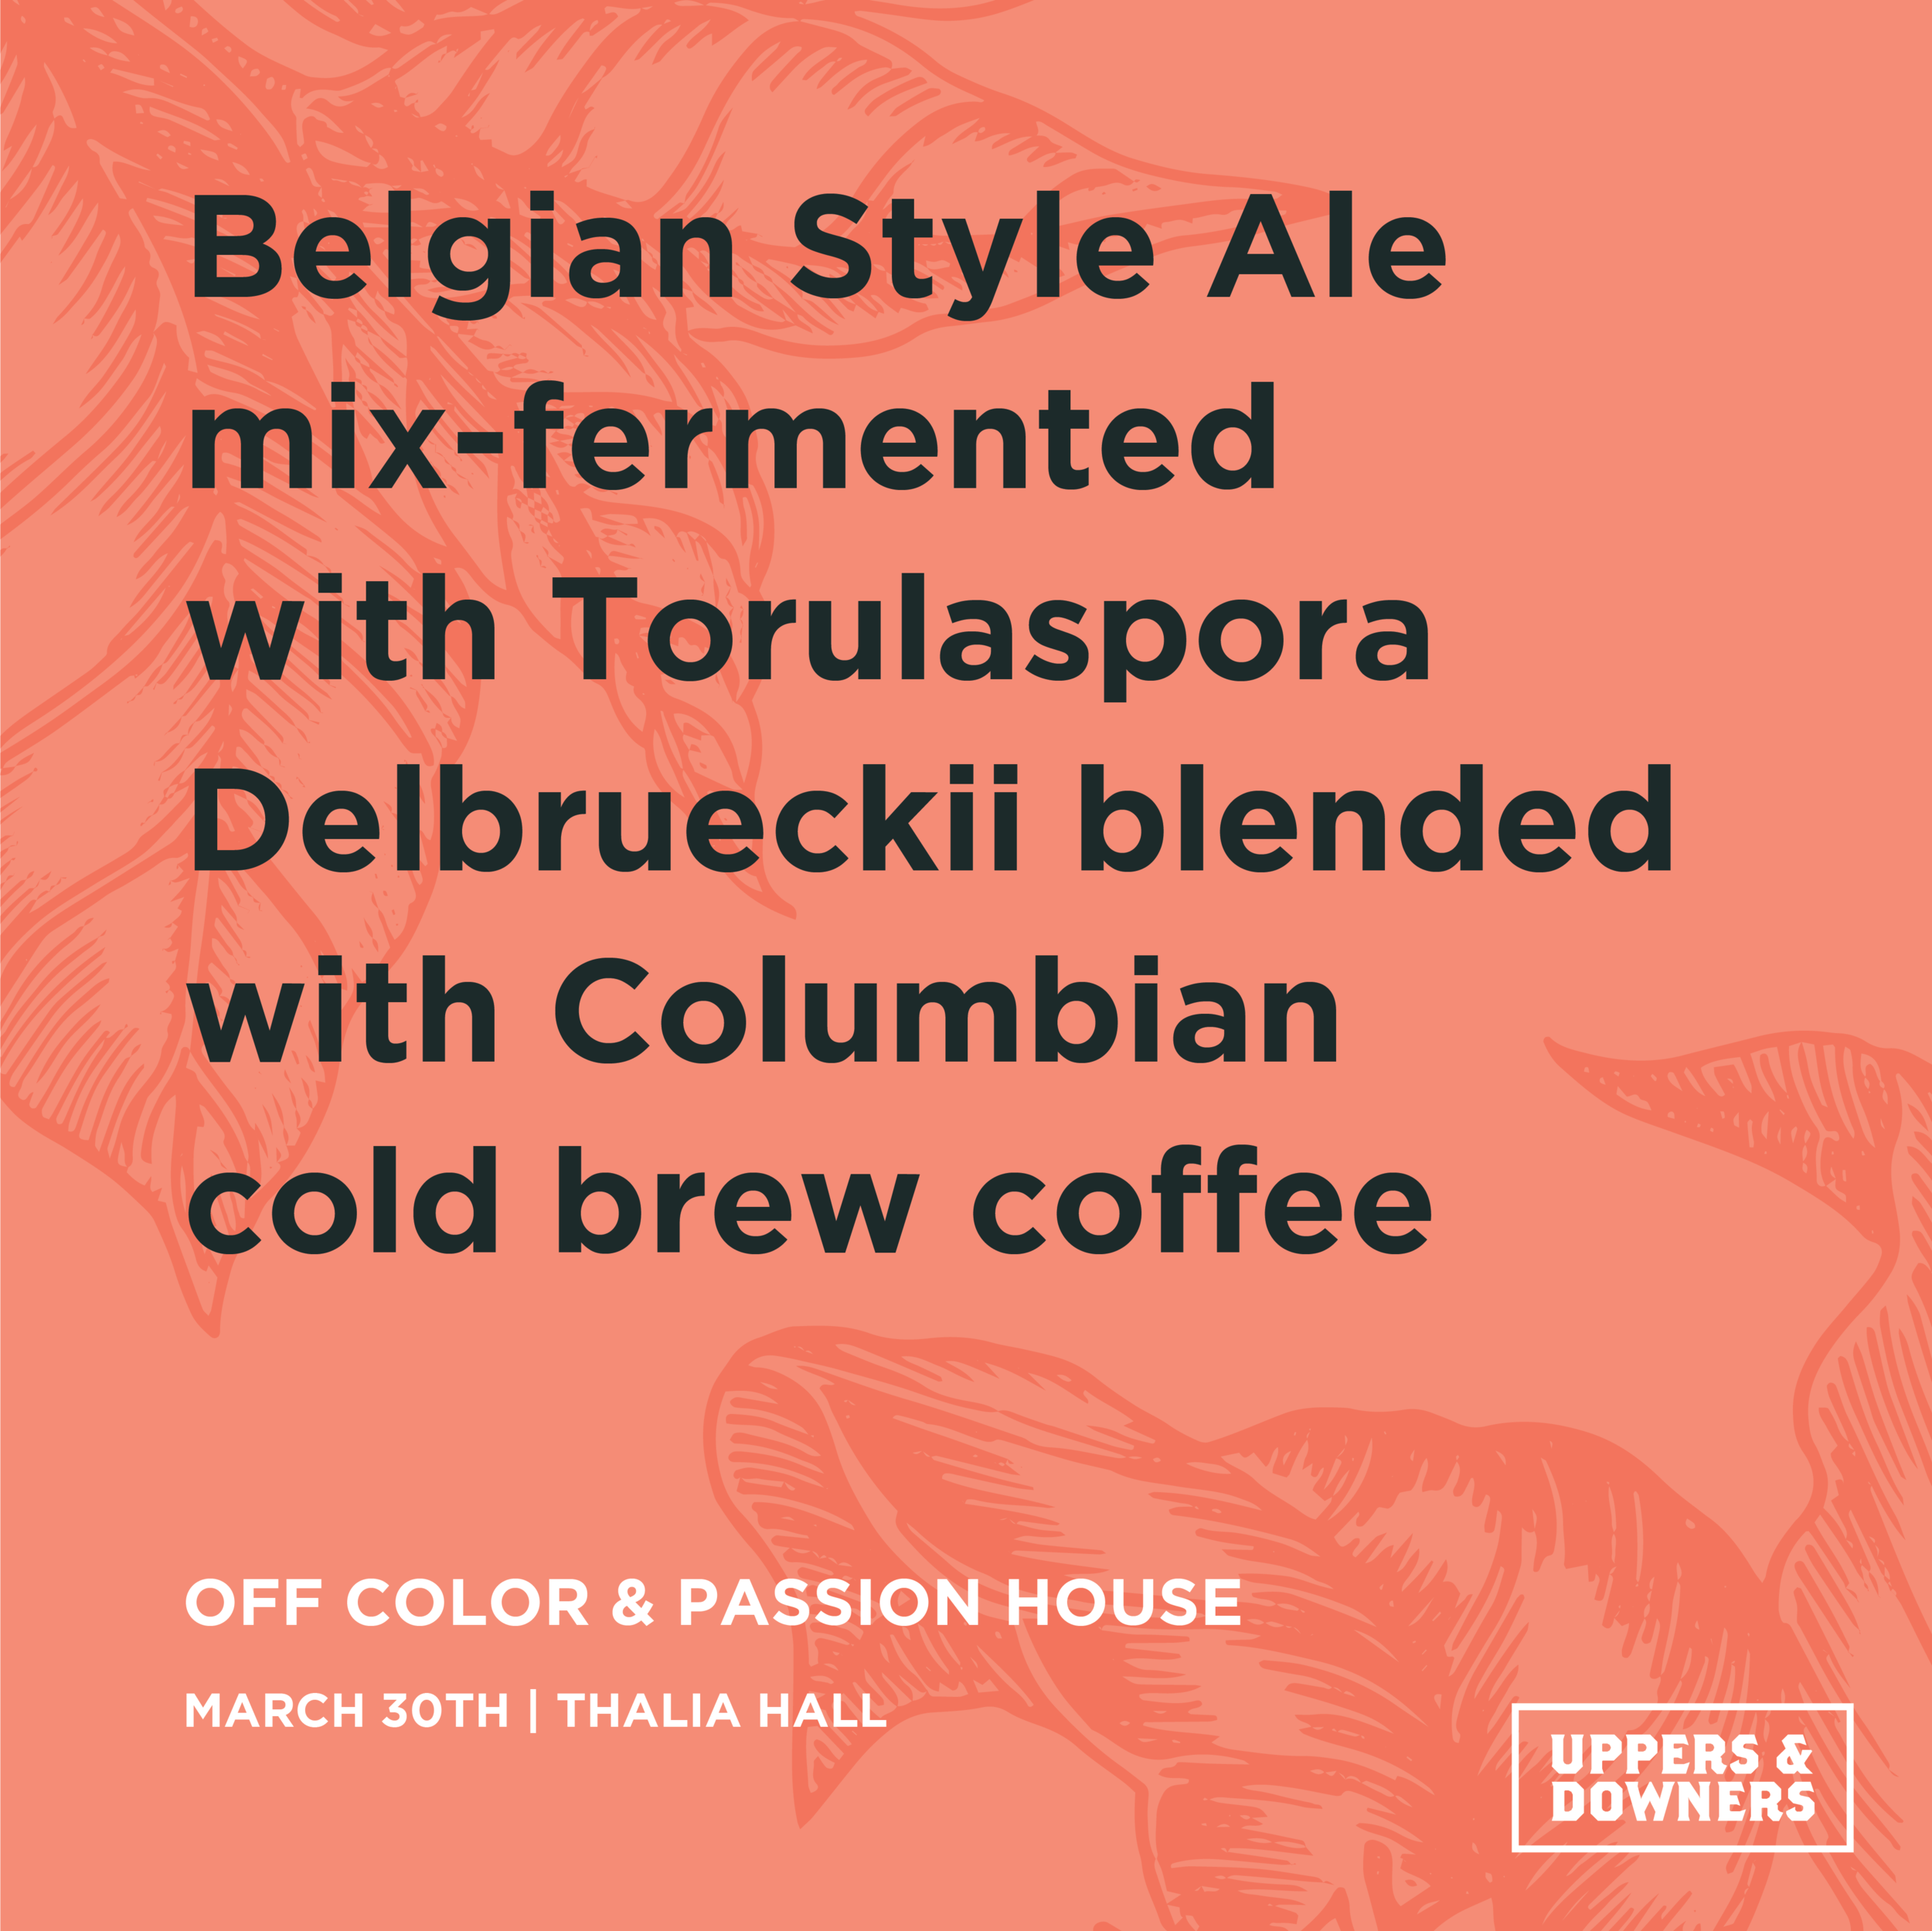 UD2019_Beer_Roaster_Instagram_Graphic_OffColor_PassionHouse.png